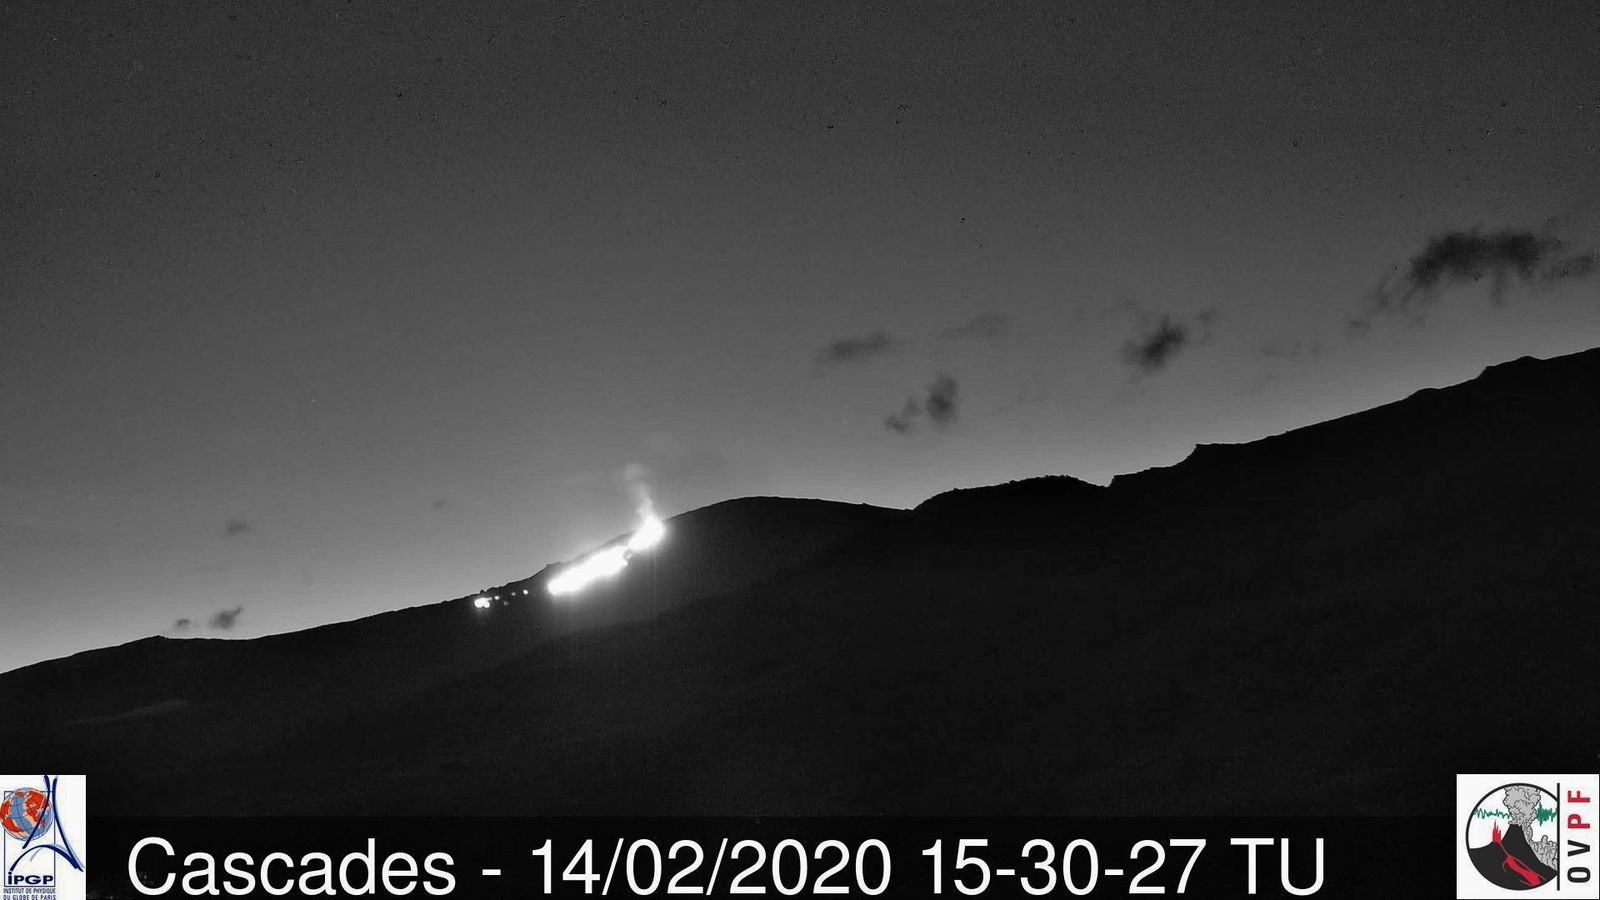 Piton de La Fournaise - 02.14.2020 / 3.30 p.m. UT - the eruption visible from the lava route - OVPF Cascades webcam